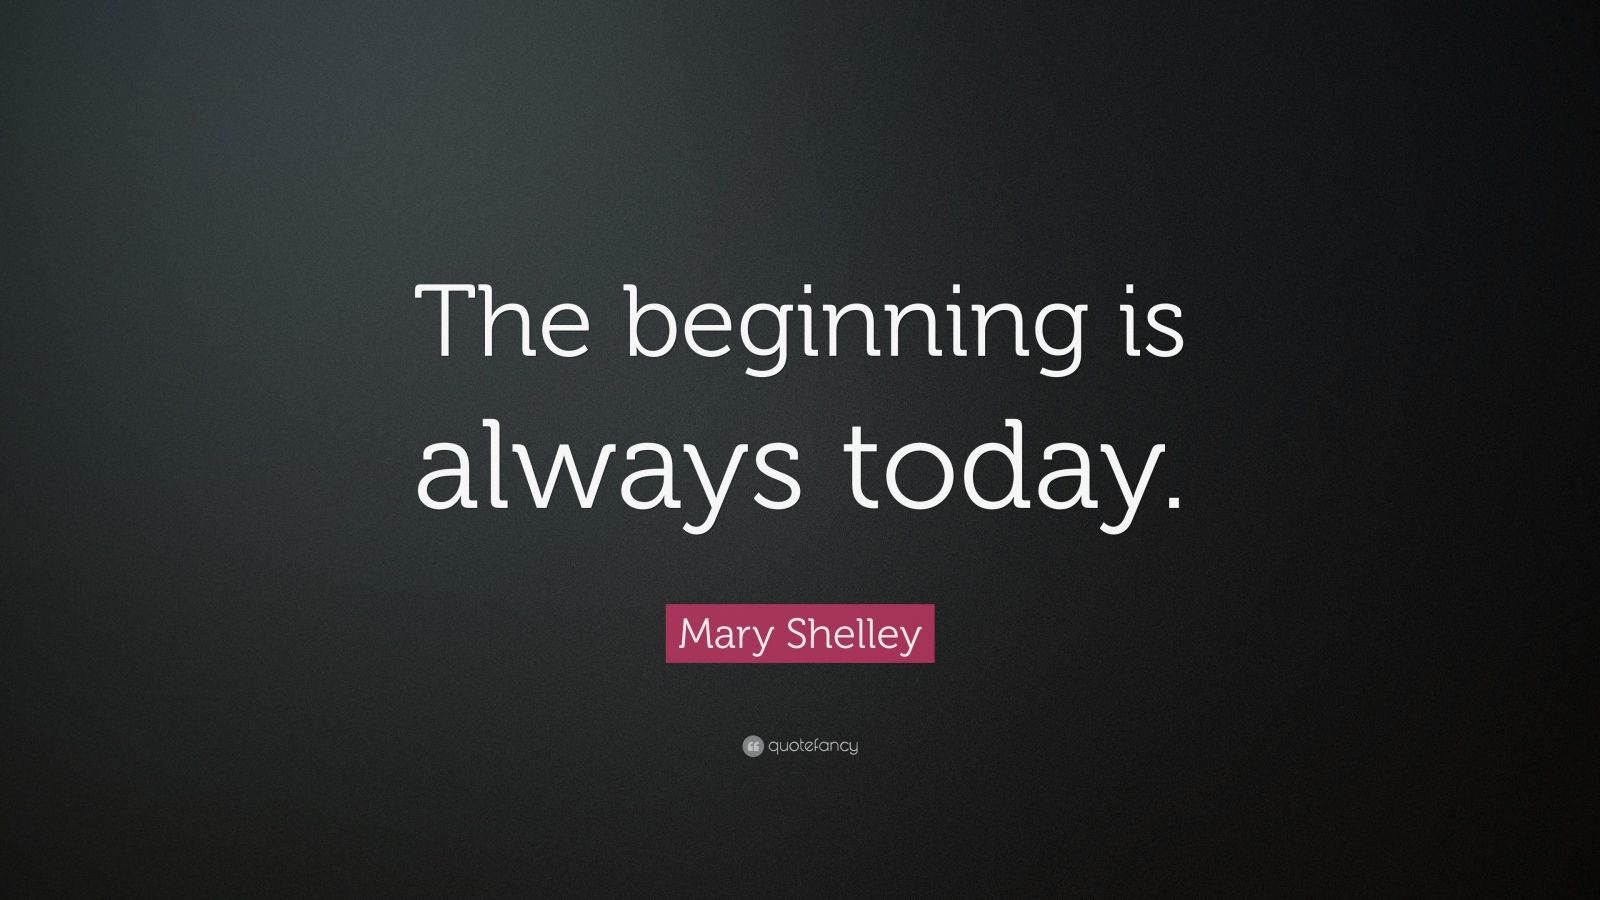 life and success of mary shelley Mary shelley biography bookmark this page manage my reading list by now, her life was seemingly connected to tragedy, with the deaths of three children, her mother, and her husband, and the suicides of percy's former wife and mary's half-sister.